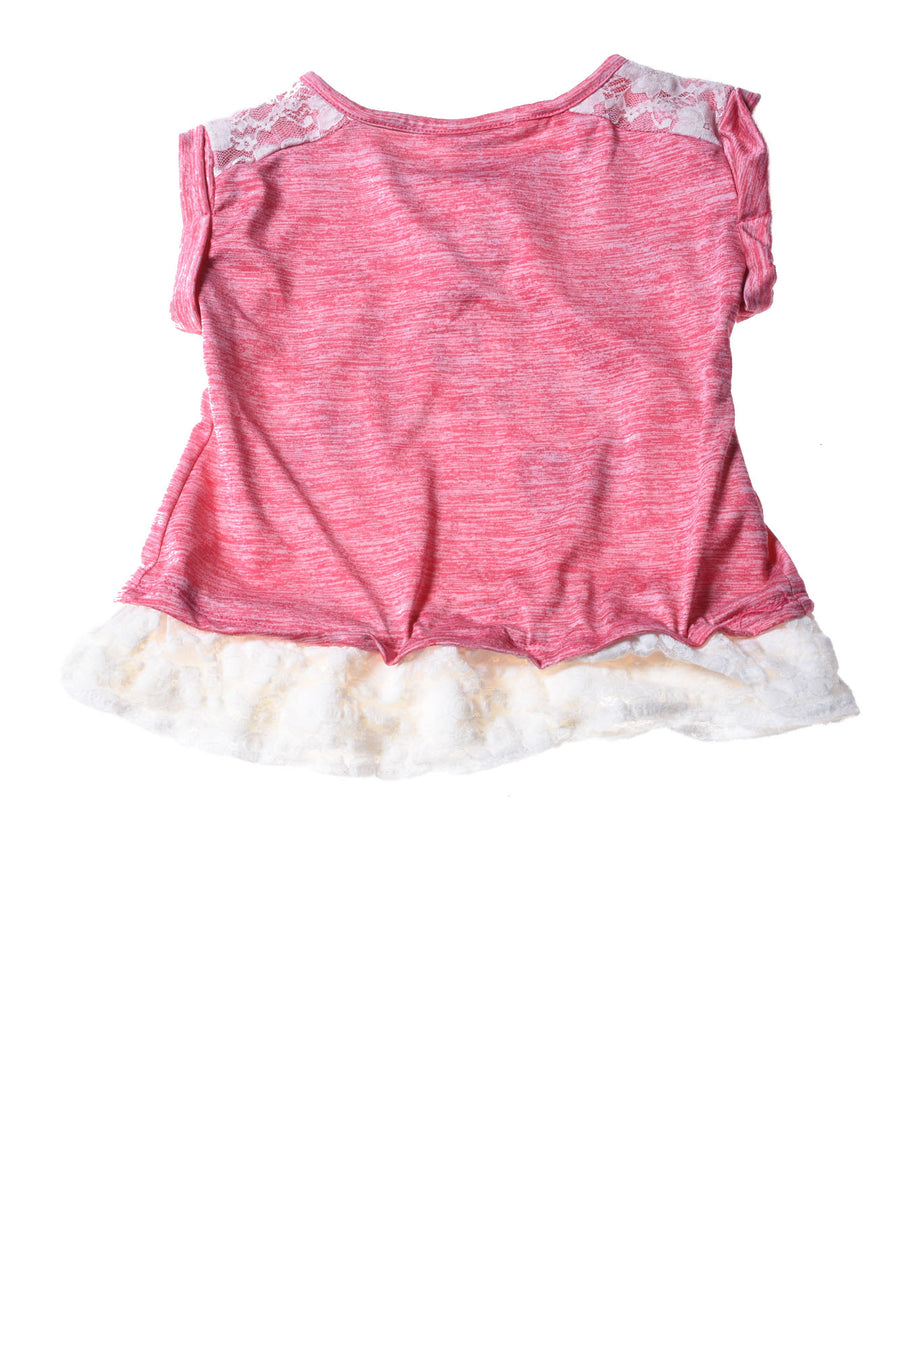 USED Nannette Baby Top 3T Pink